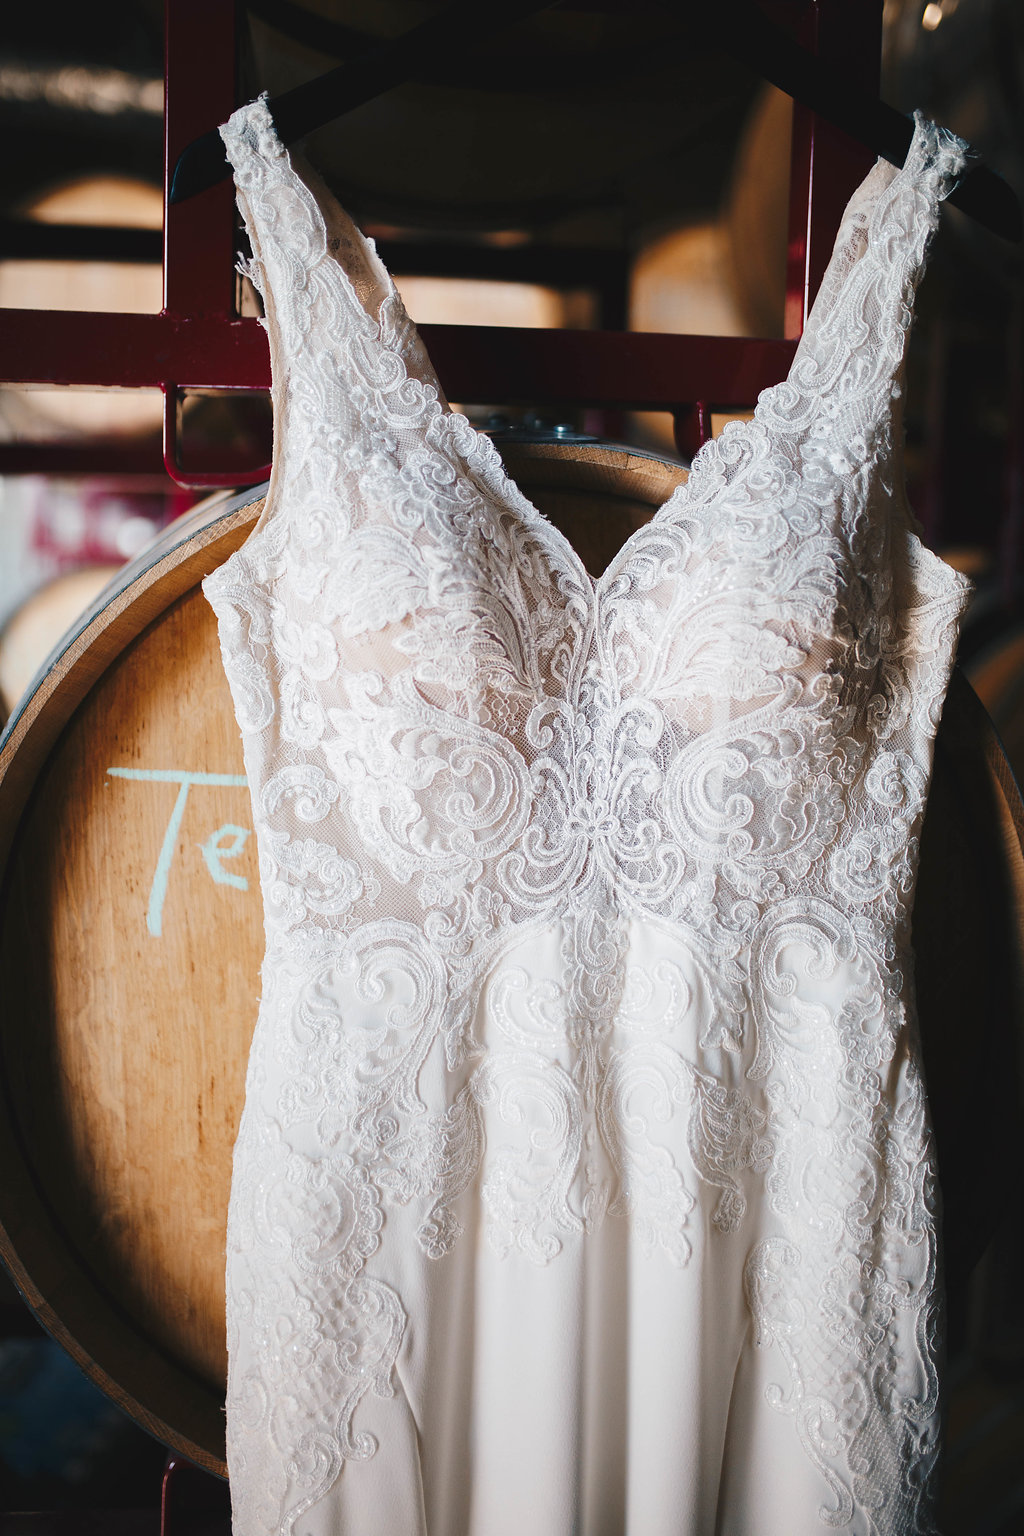 lace wedding dress hanging in the barrel room of a winery